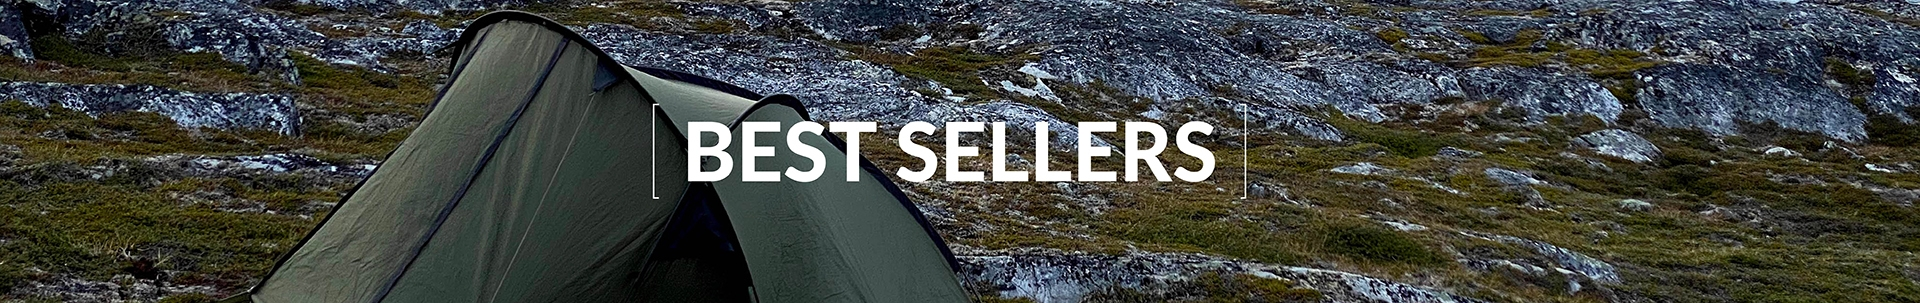 Best Sellers Tents and Shelters